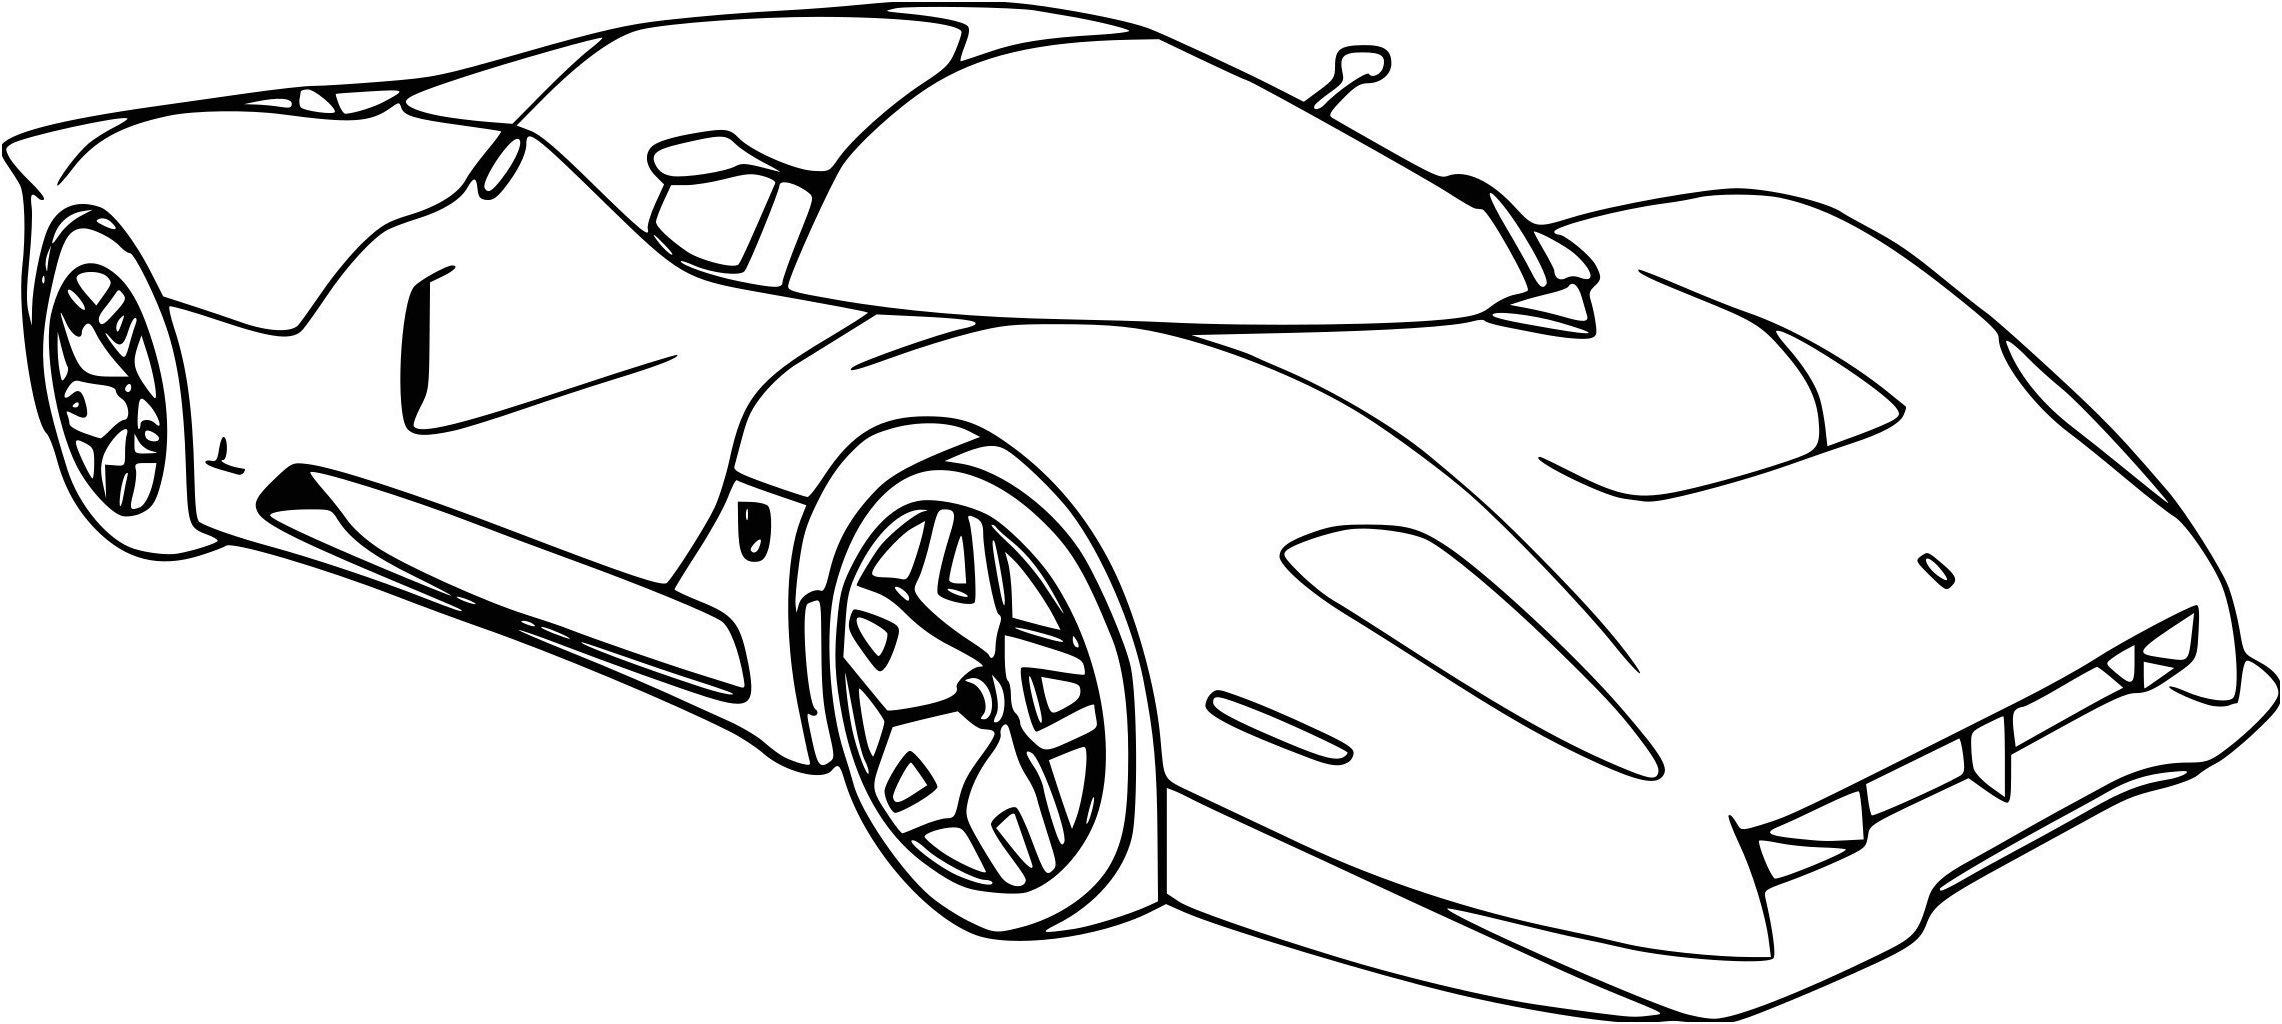 12 Impressionnant Coloriage Voiture Fast and Furious Image ...